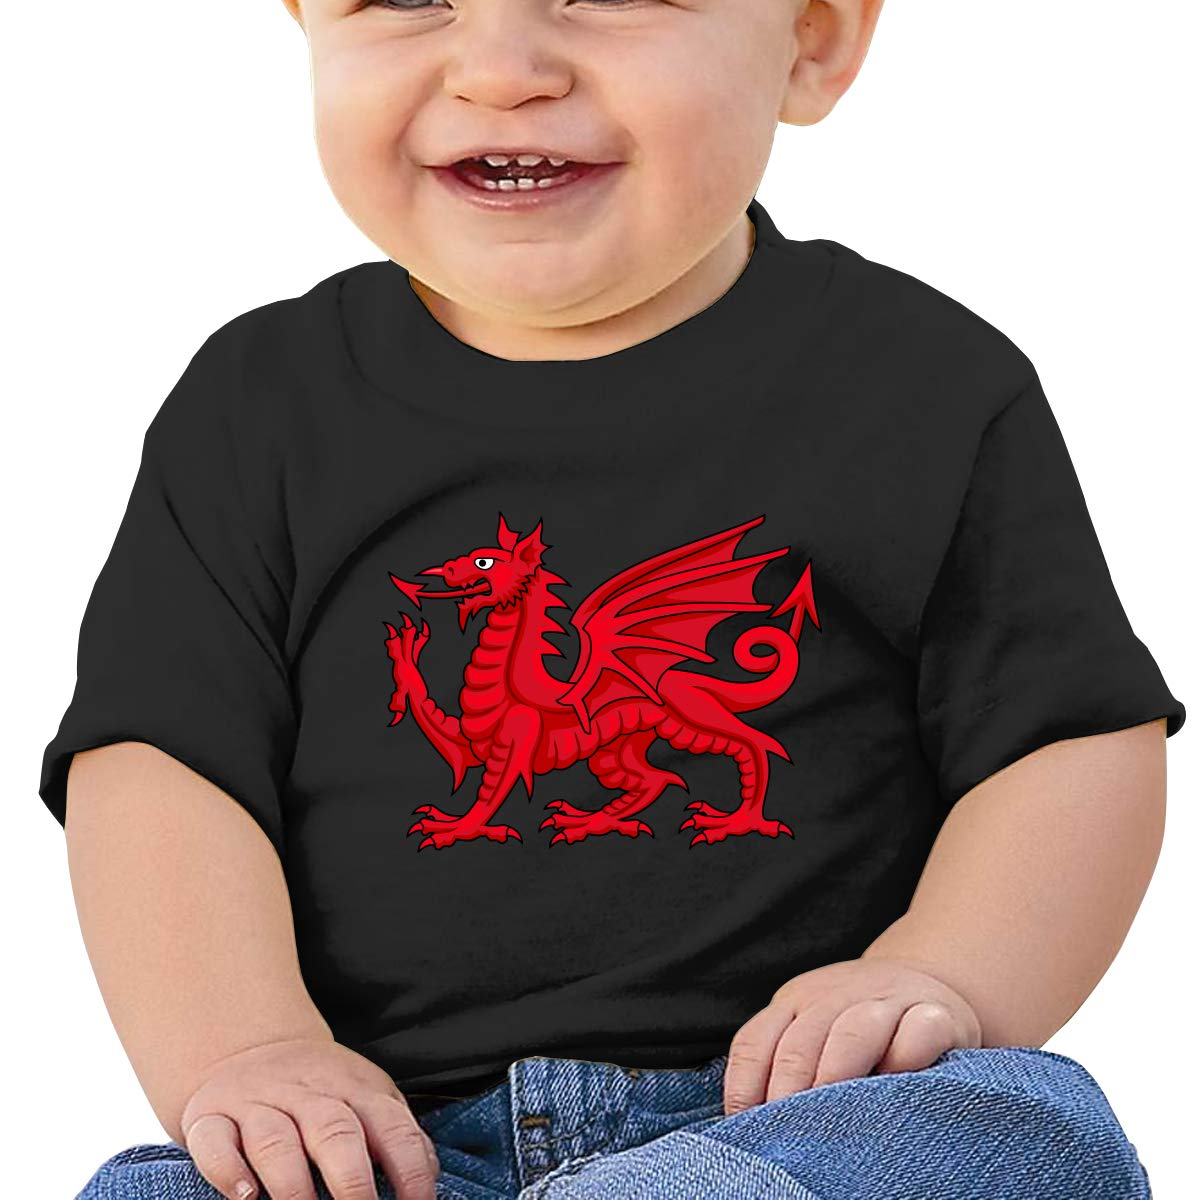 Dragon Toddler Short-Sleeve Tee for Boy Girl Infant Kids T-Shirt On Newborn 6-18 Months